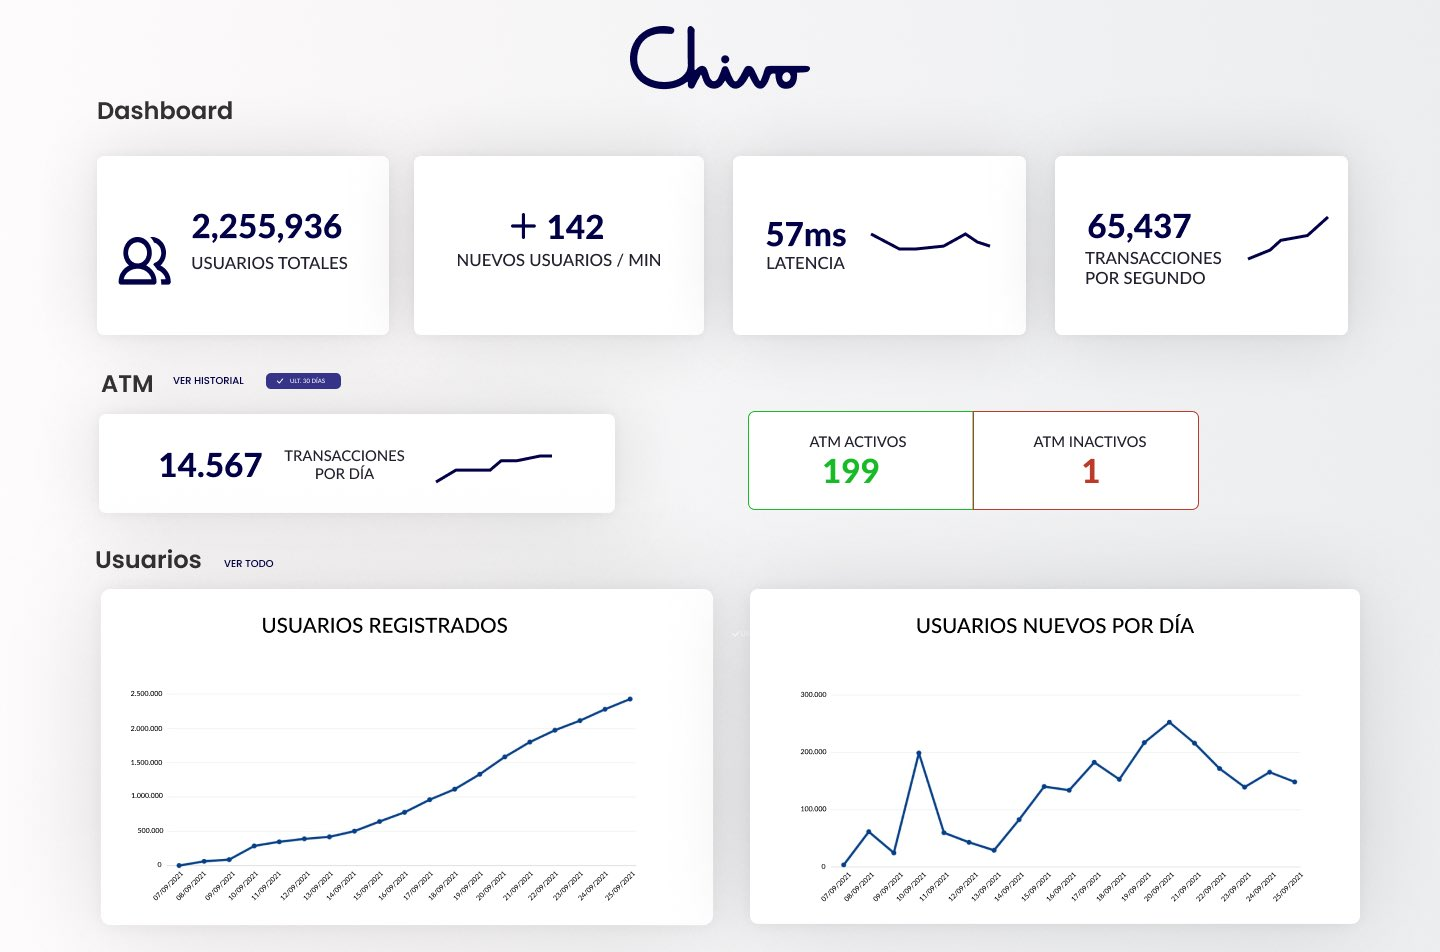 Chivo Wallet has more users than any other bank in El Salvador